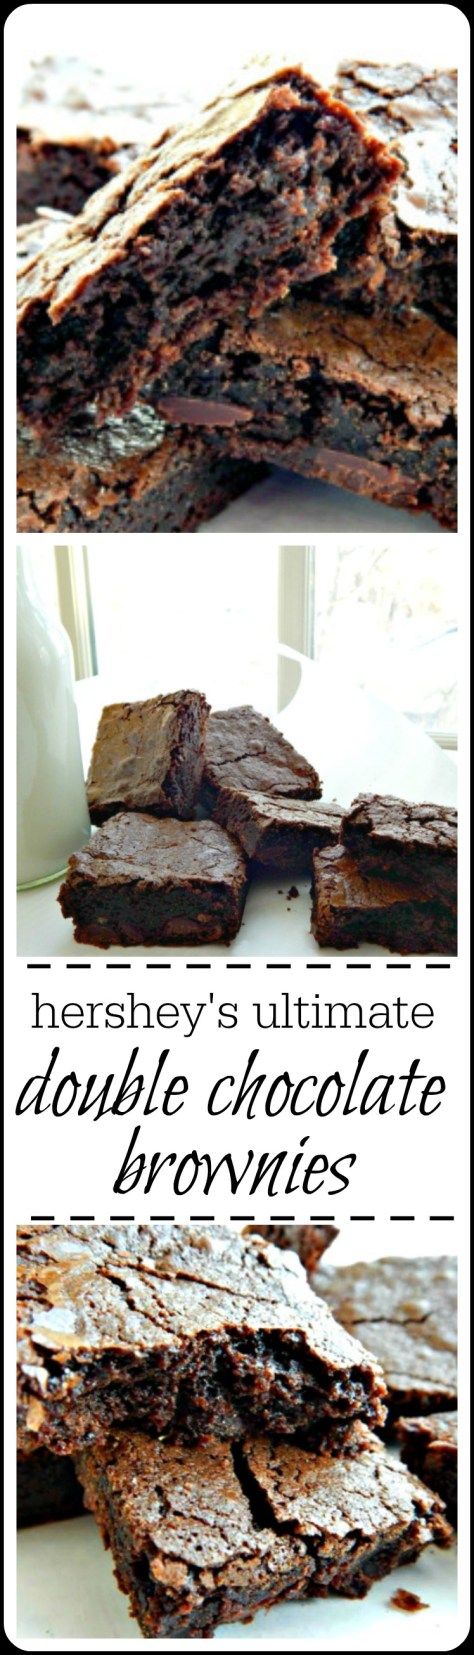 I hardly ever make another brownie recipe. Oh, I think about it, but these are just too good!